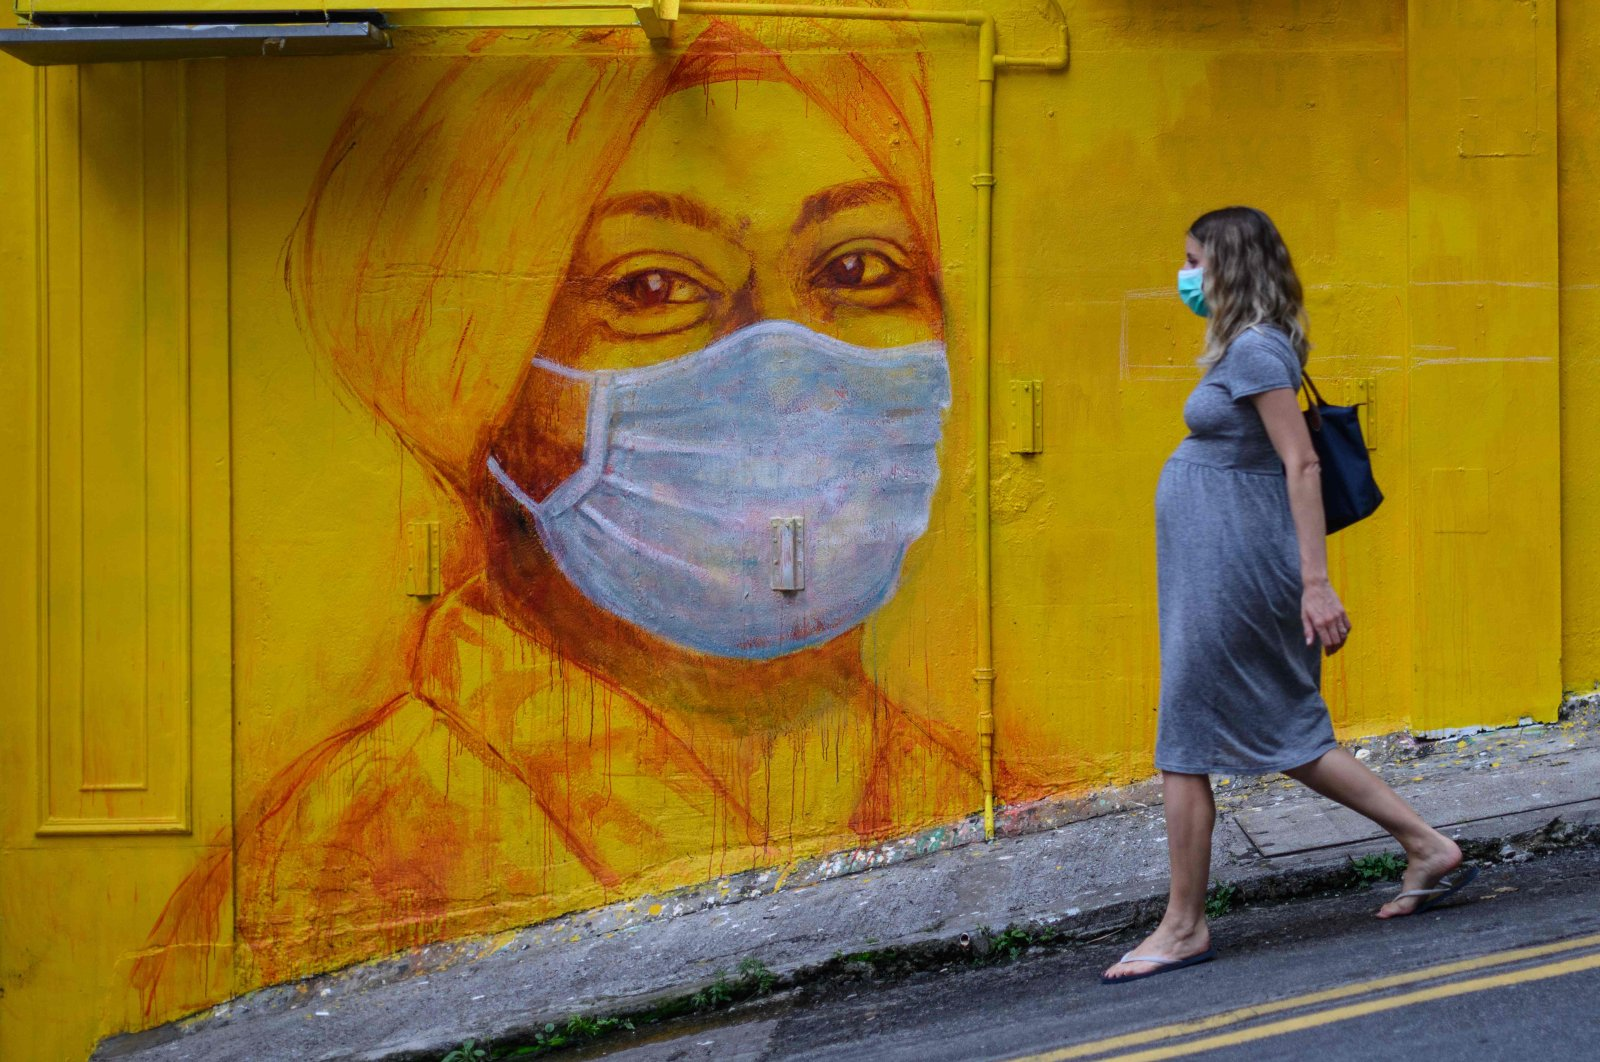 A pregnant woman wearing a face mask walks past a street mural in Hong Kong, March 23, 2020.